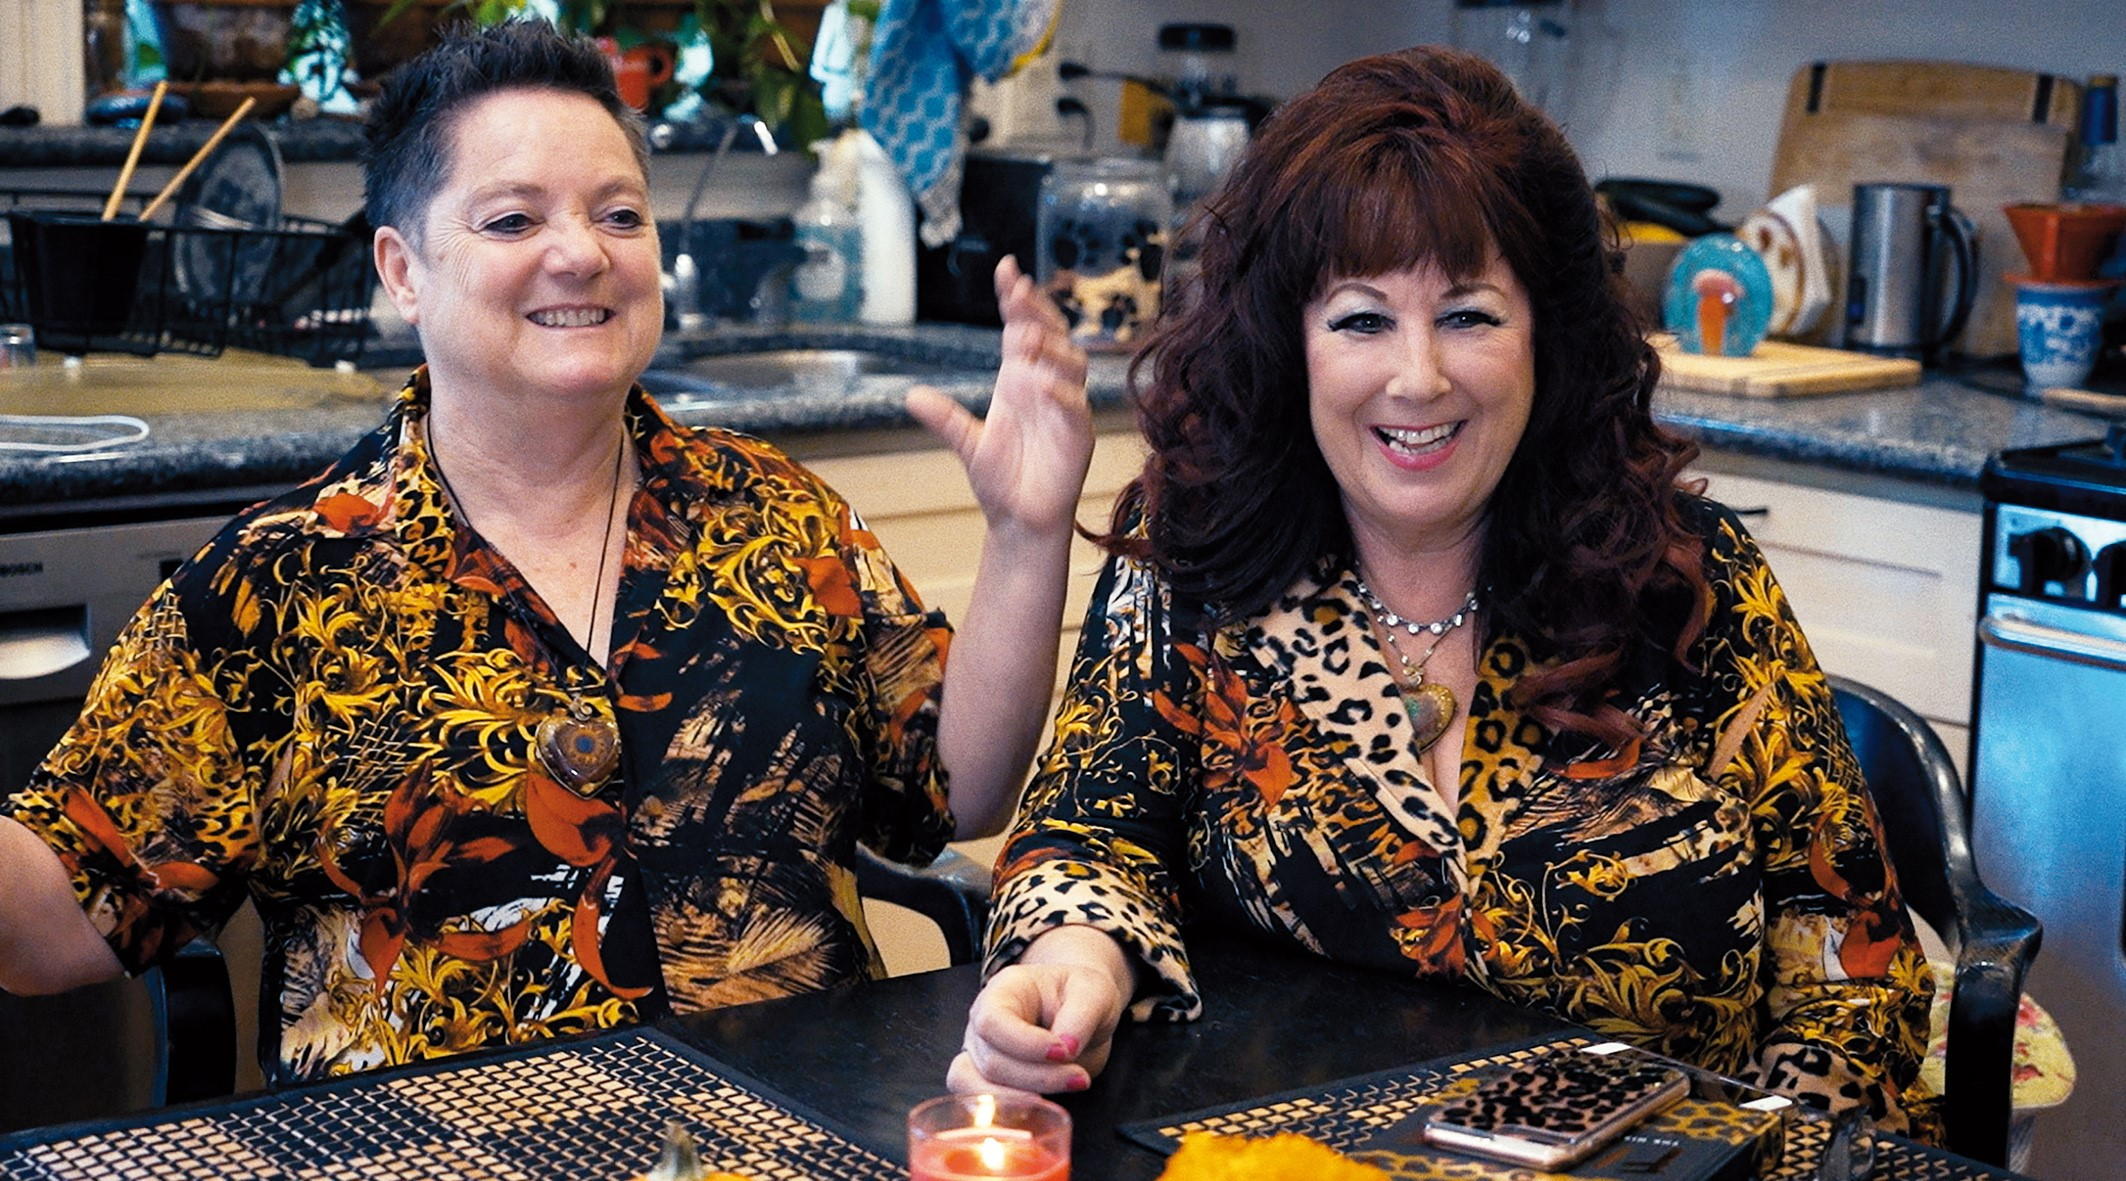 Image: Annie Sprinkle (right) and Beth Stephens in Monika Treut's Genderation